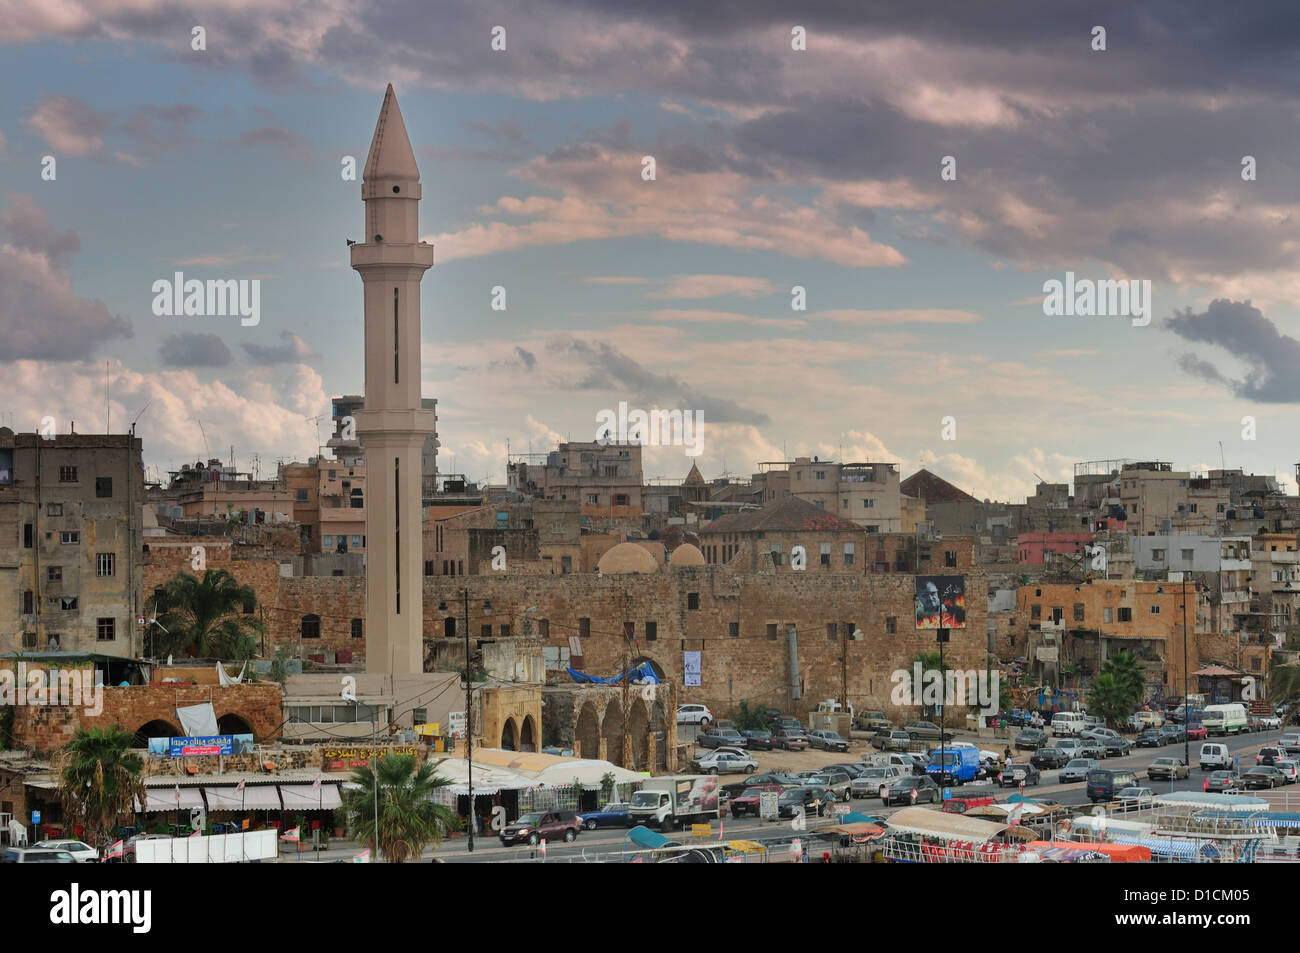 L'ASDI, Sidon Sud Liban Photo Stock